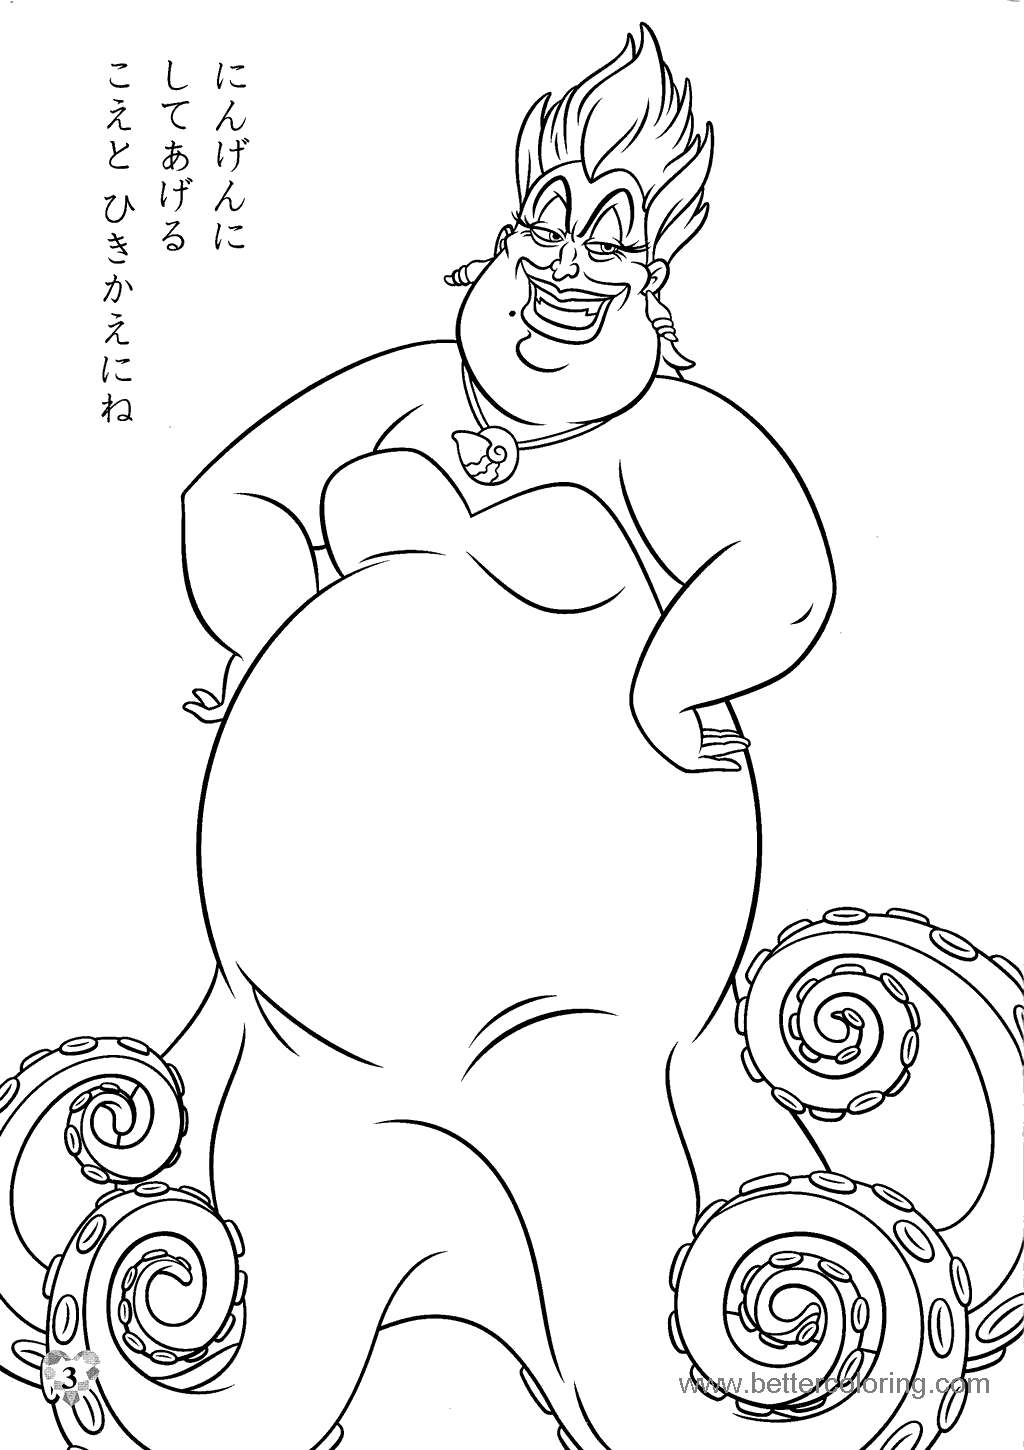 Free Ursula Coloring Pages for Preschool 73 printable